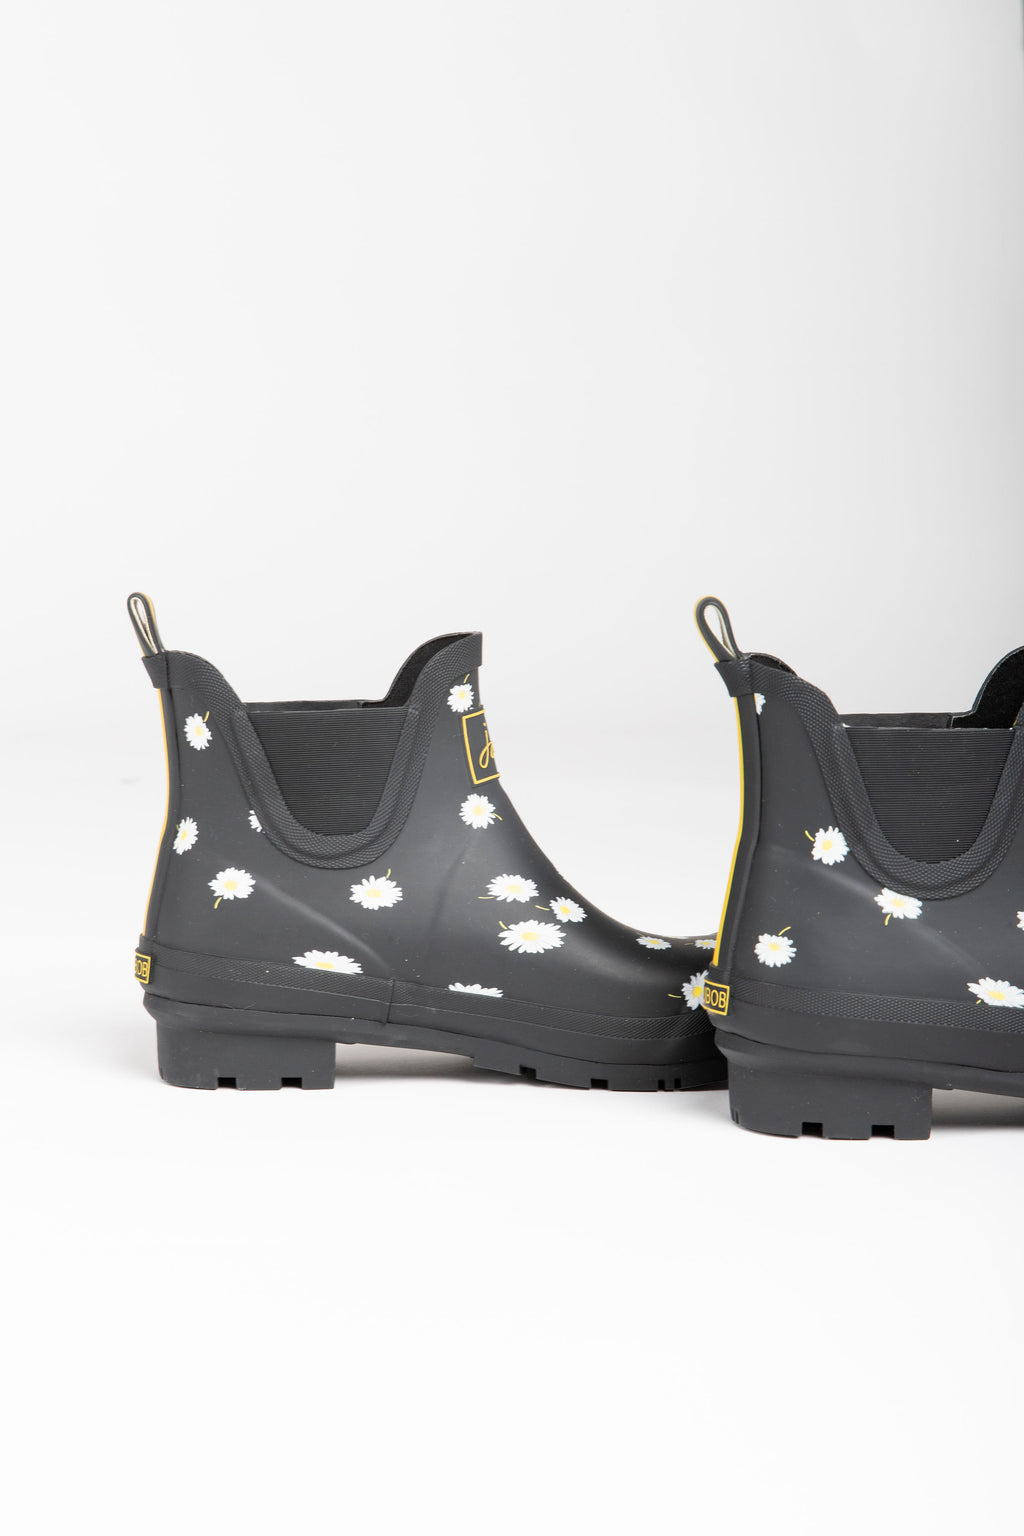 Joules: Wellibob Short Height Rainboots in Black Daisy